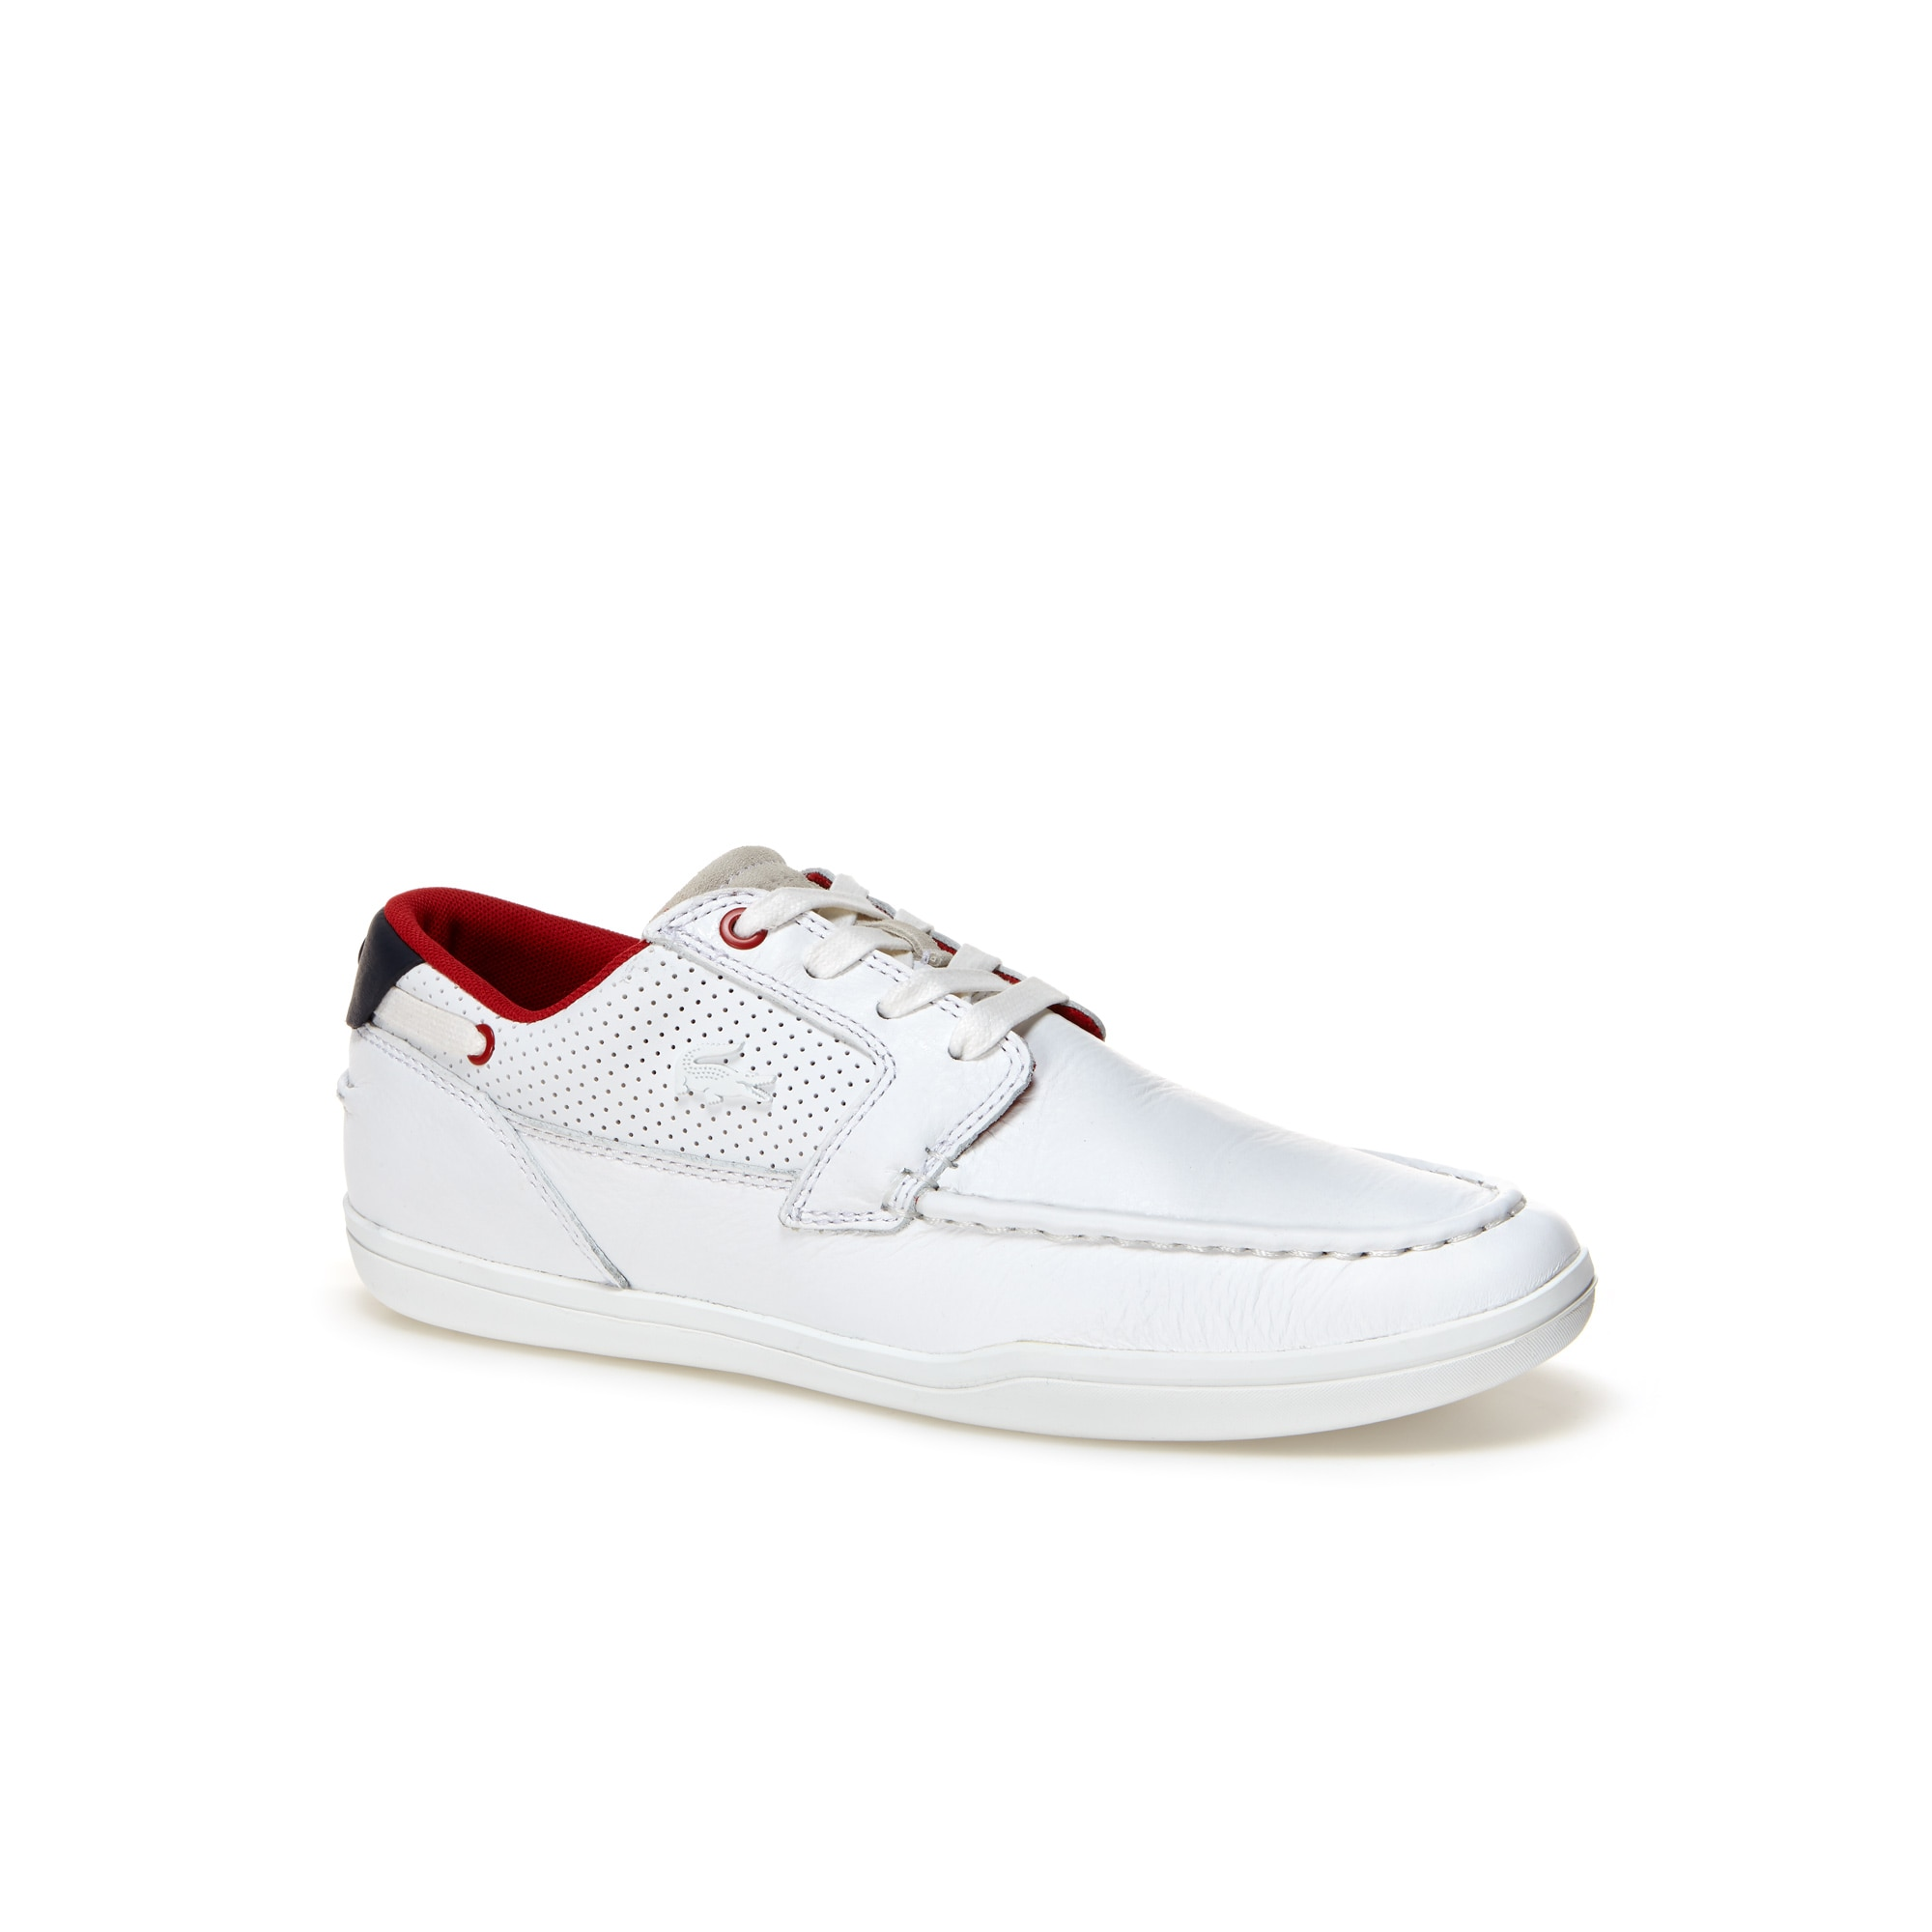 Men's Deck-Minimal Leather Sneakers